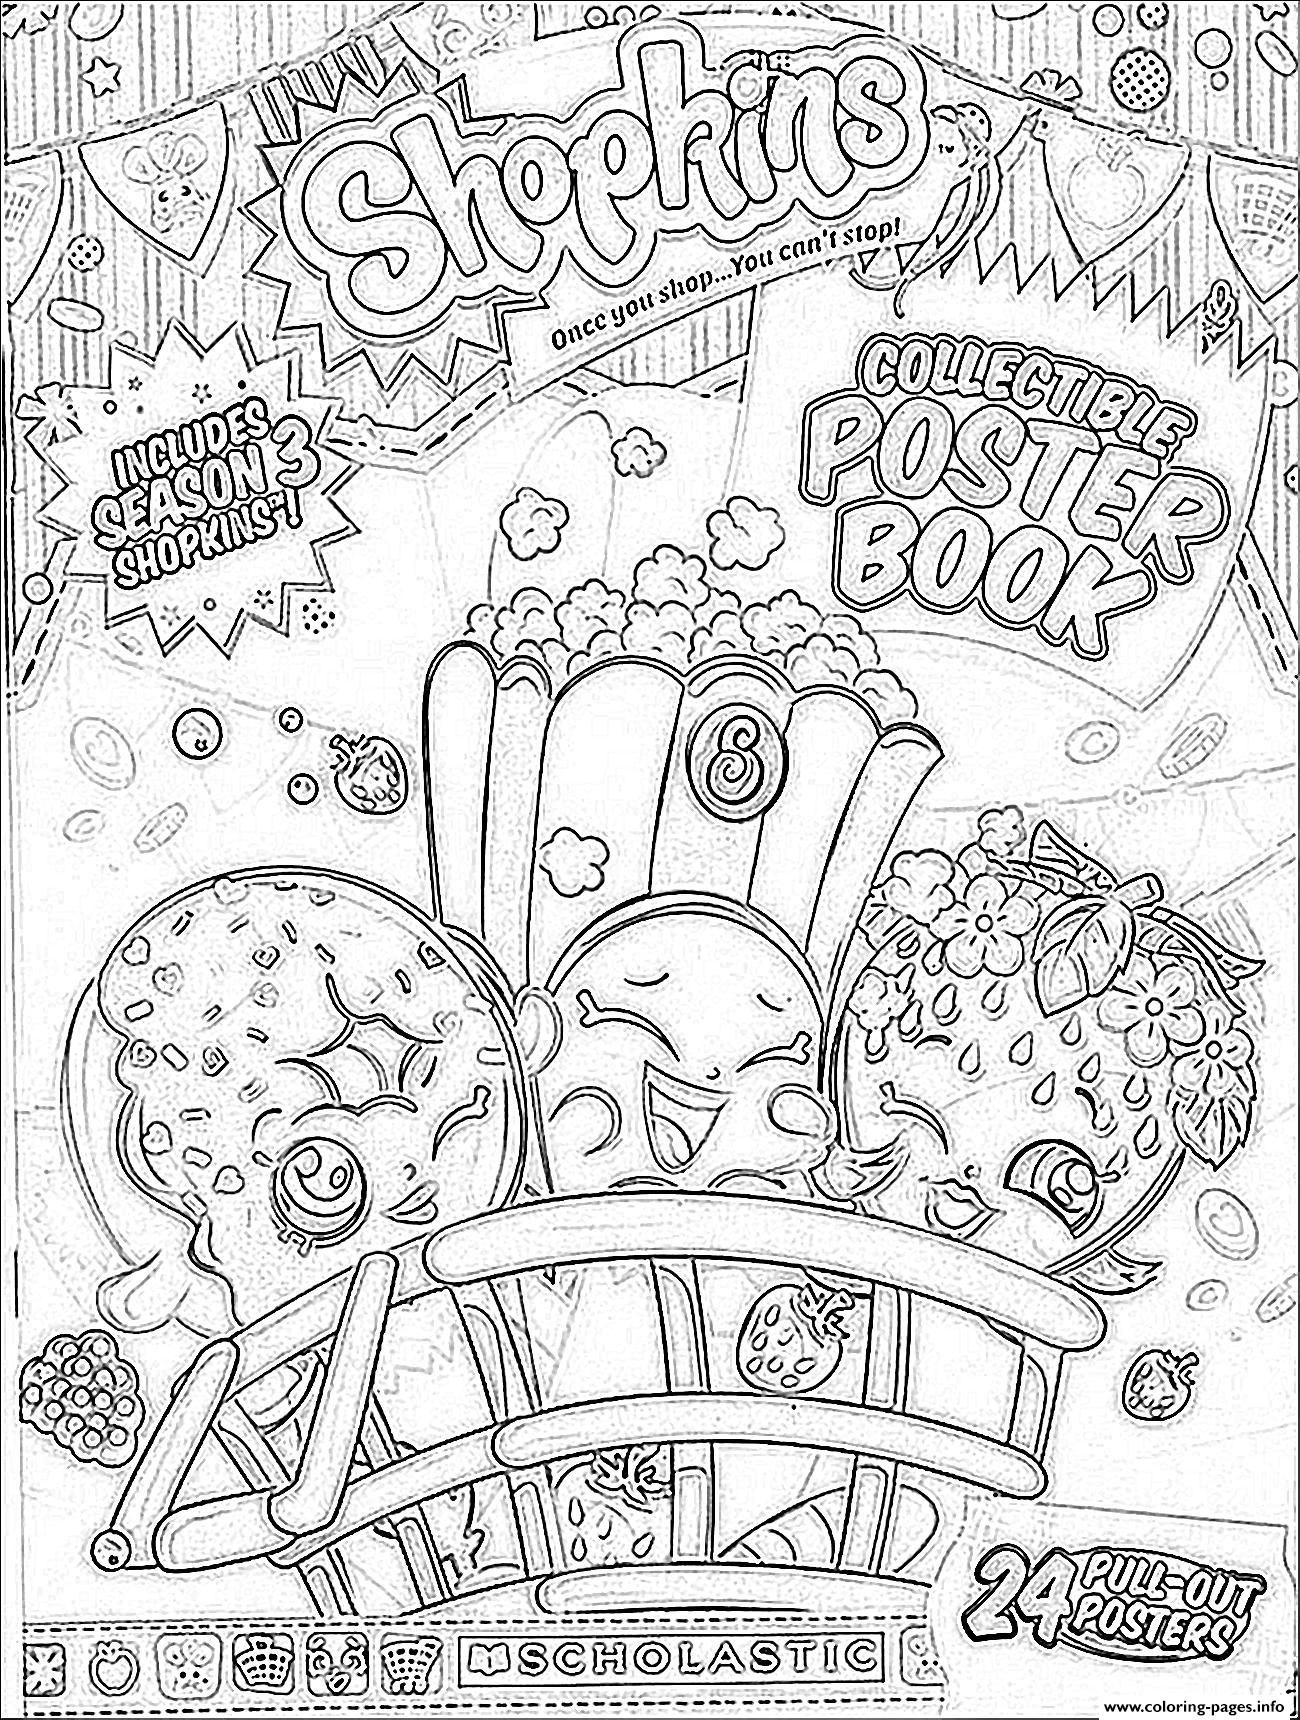 Shopkins coloring pages season 5 shopkins awesome printable coloring - Print Shopkins Season 3 Book Coloring Pages